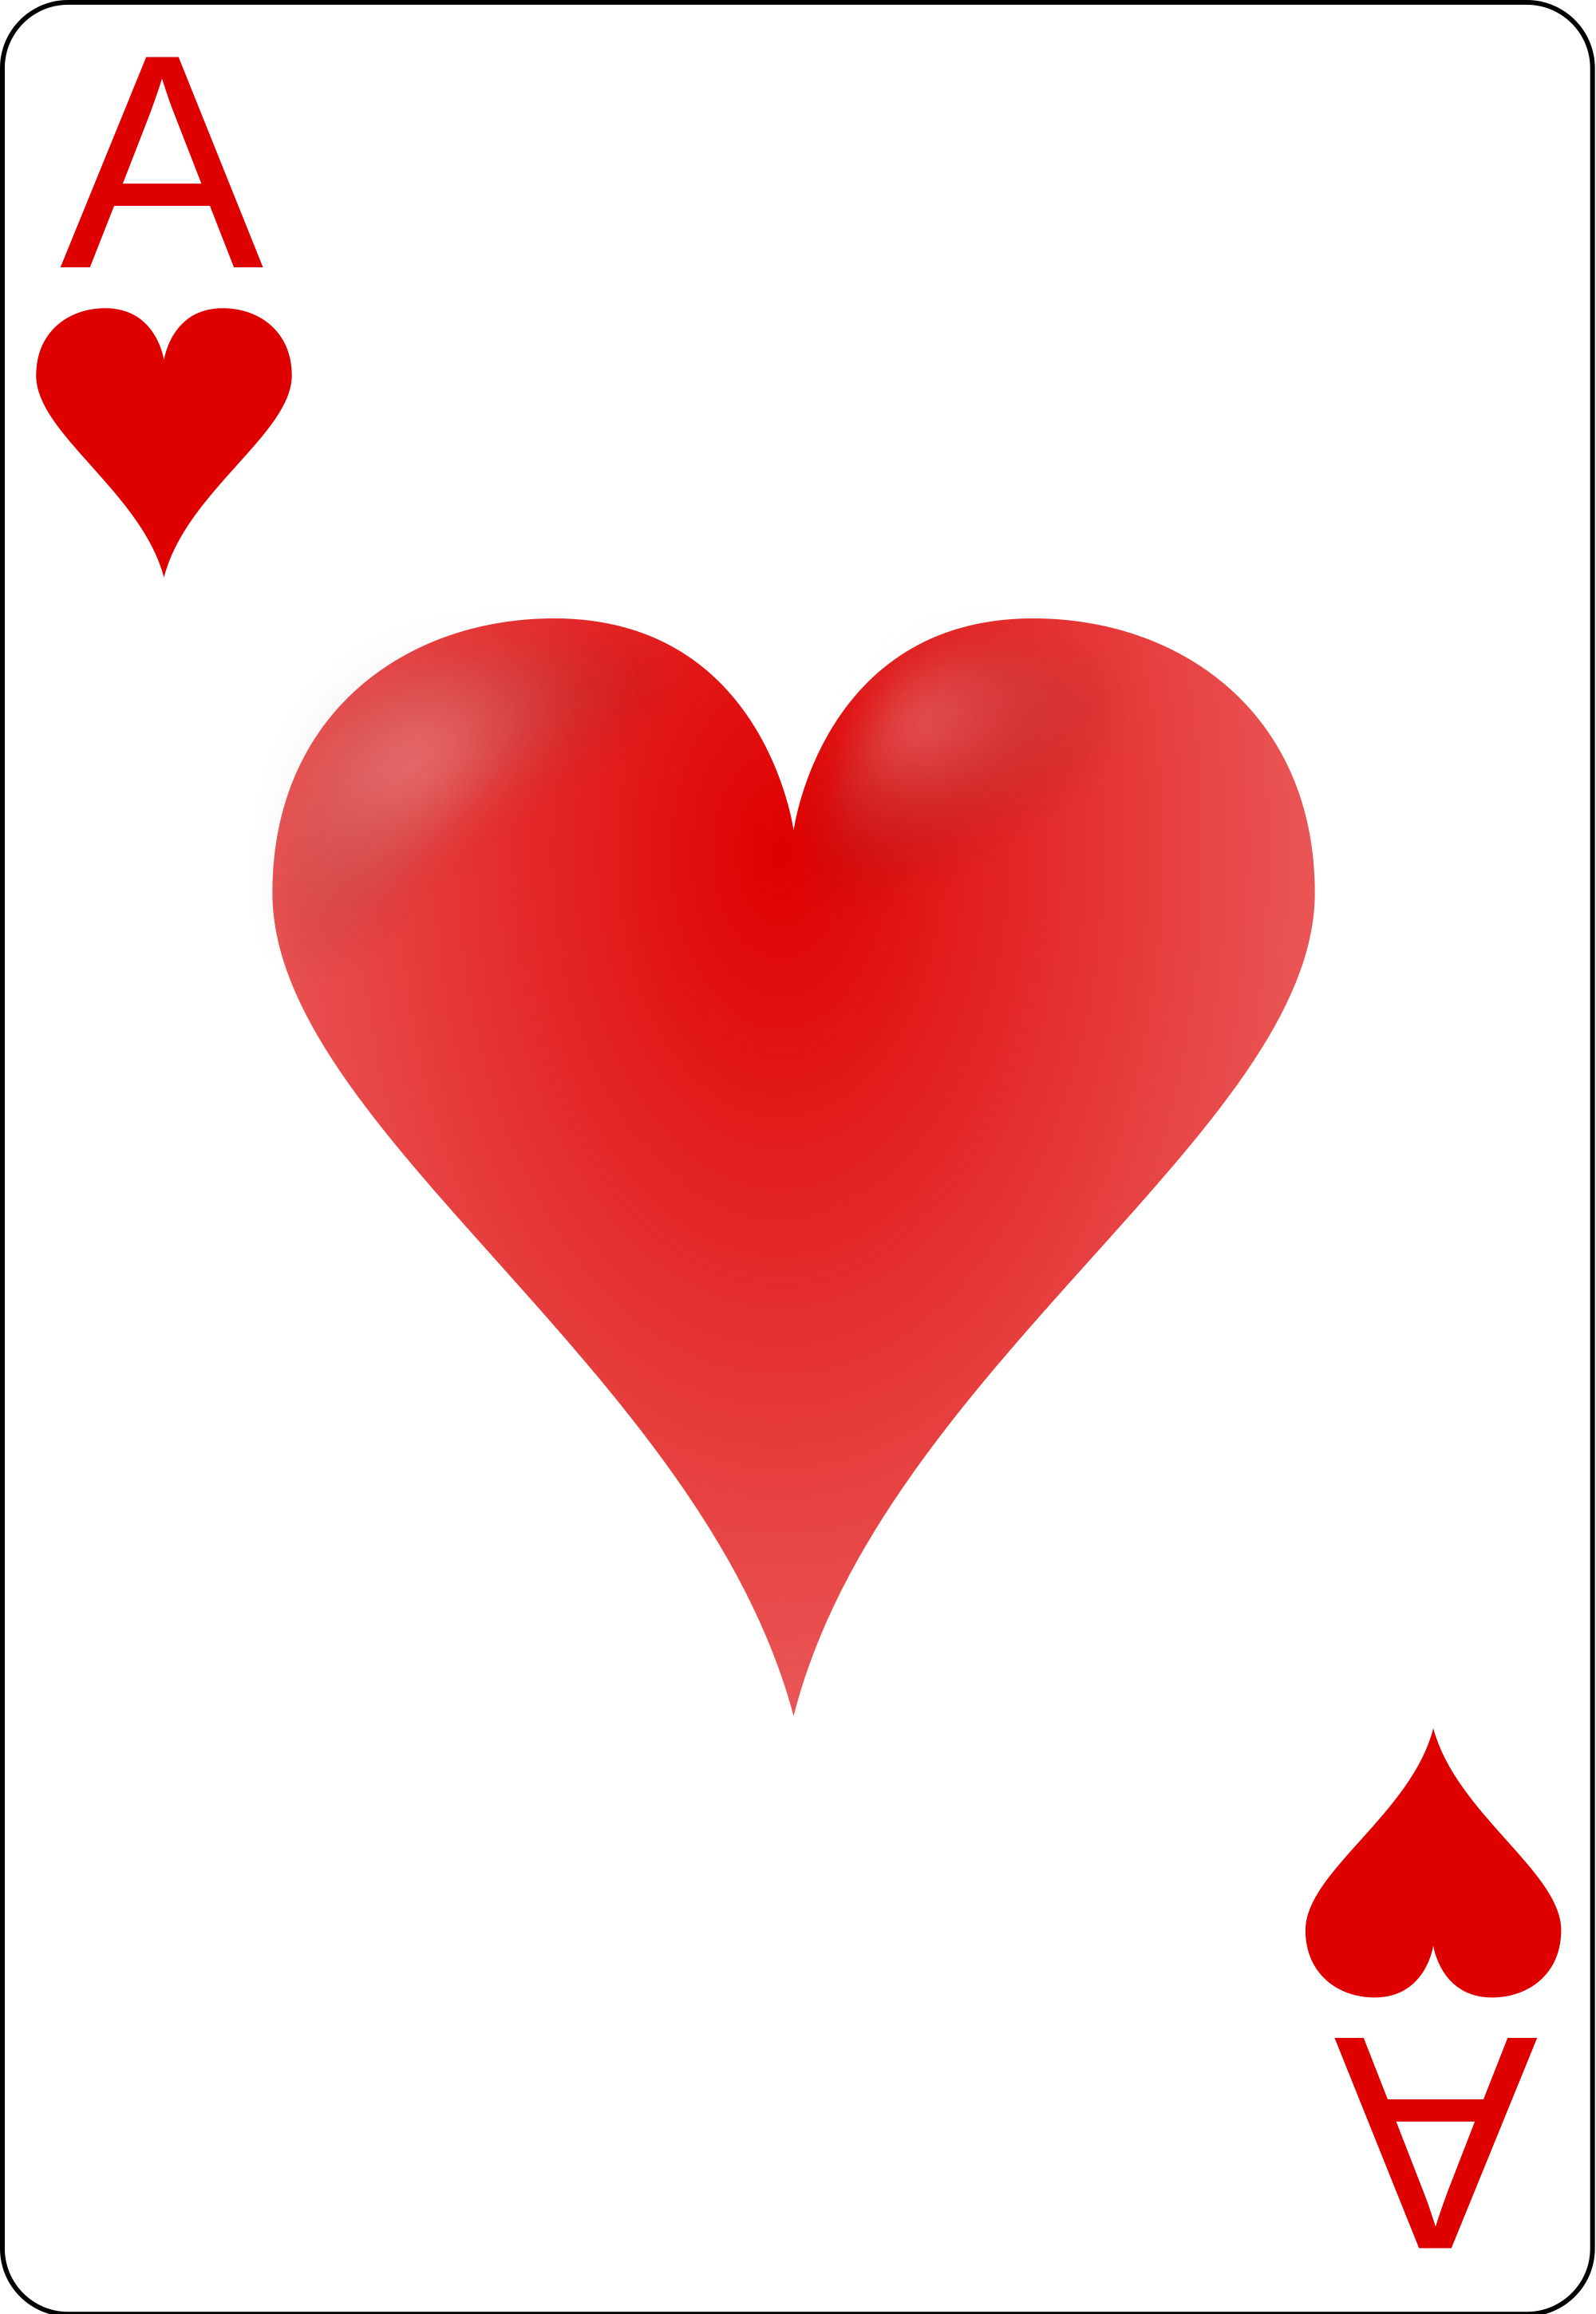 File:Ace of hearts.svg - Wikimedia Commons image download